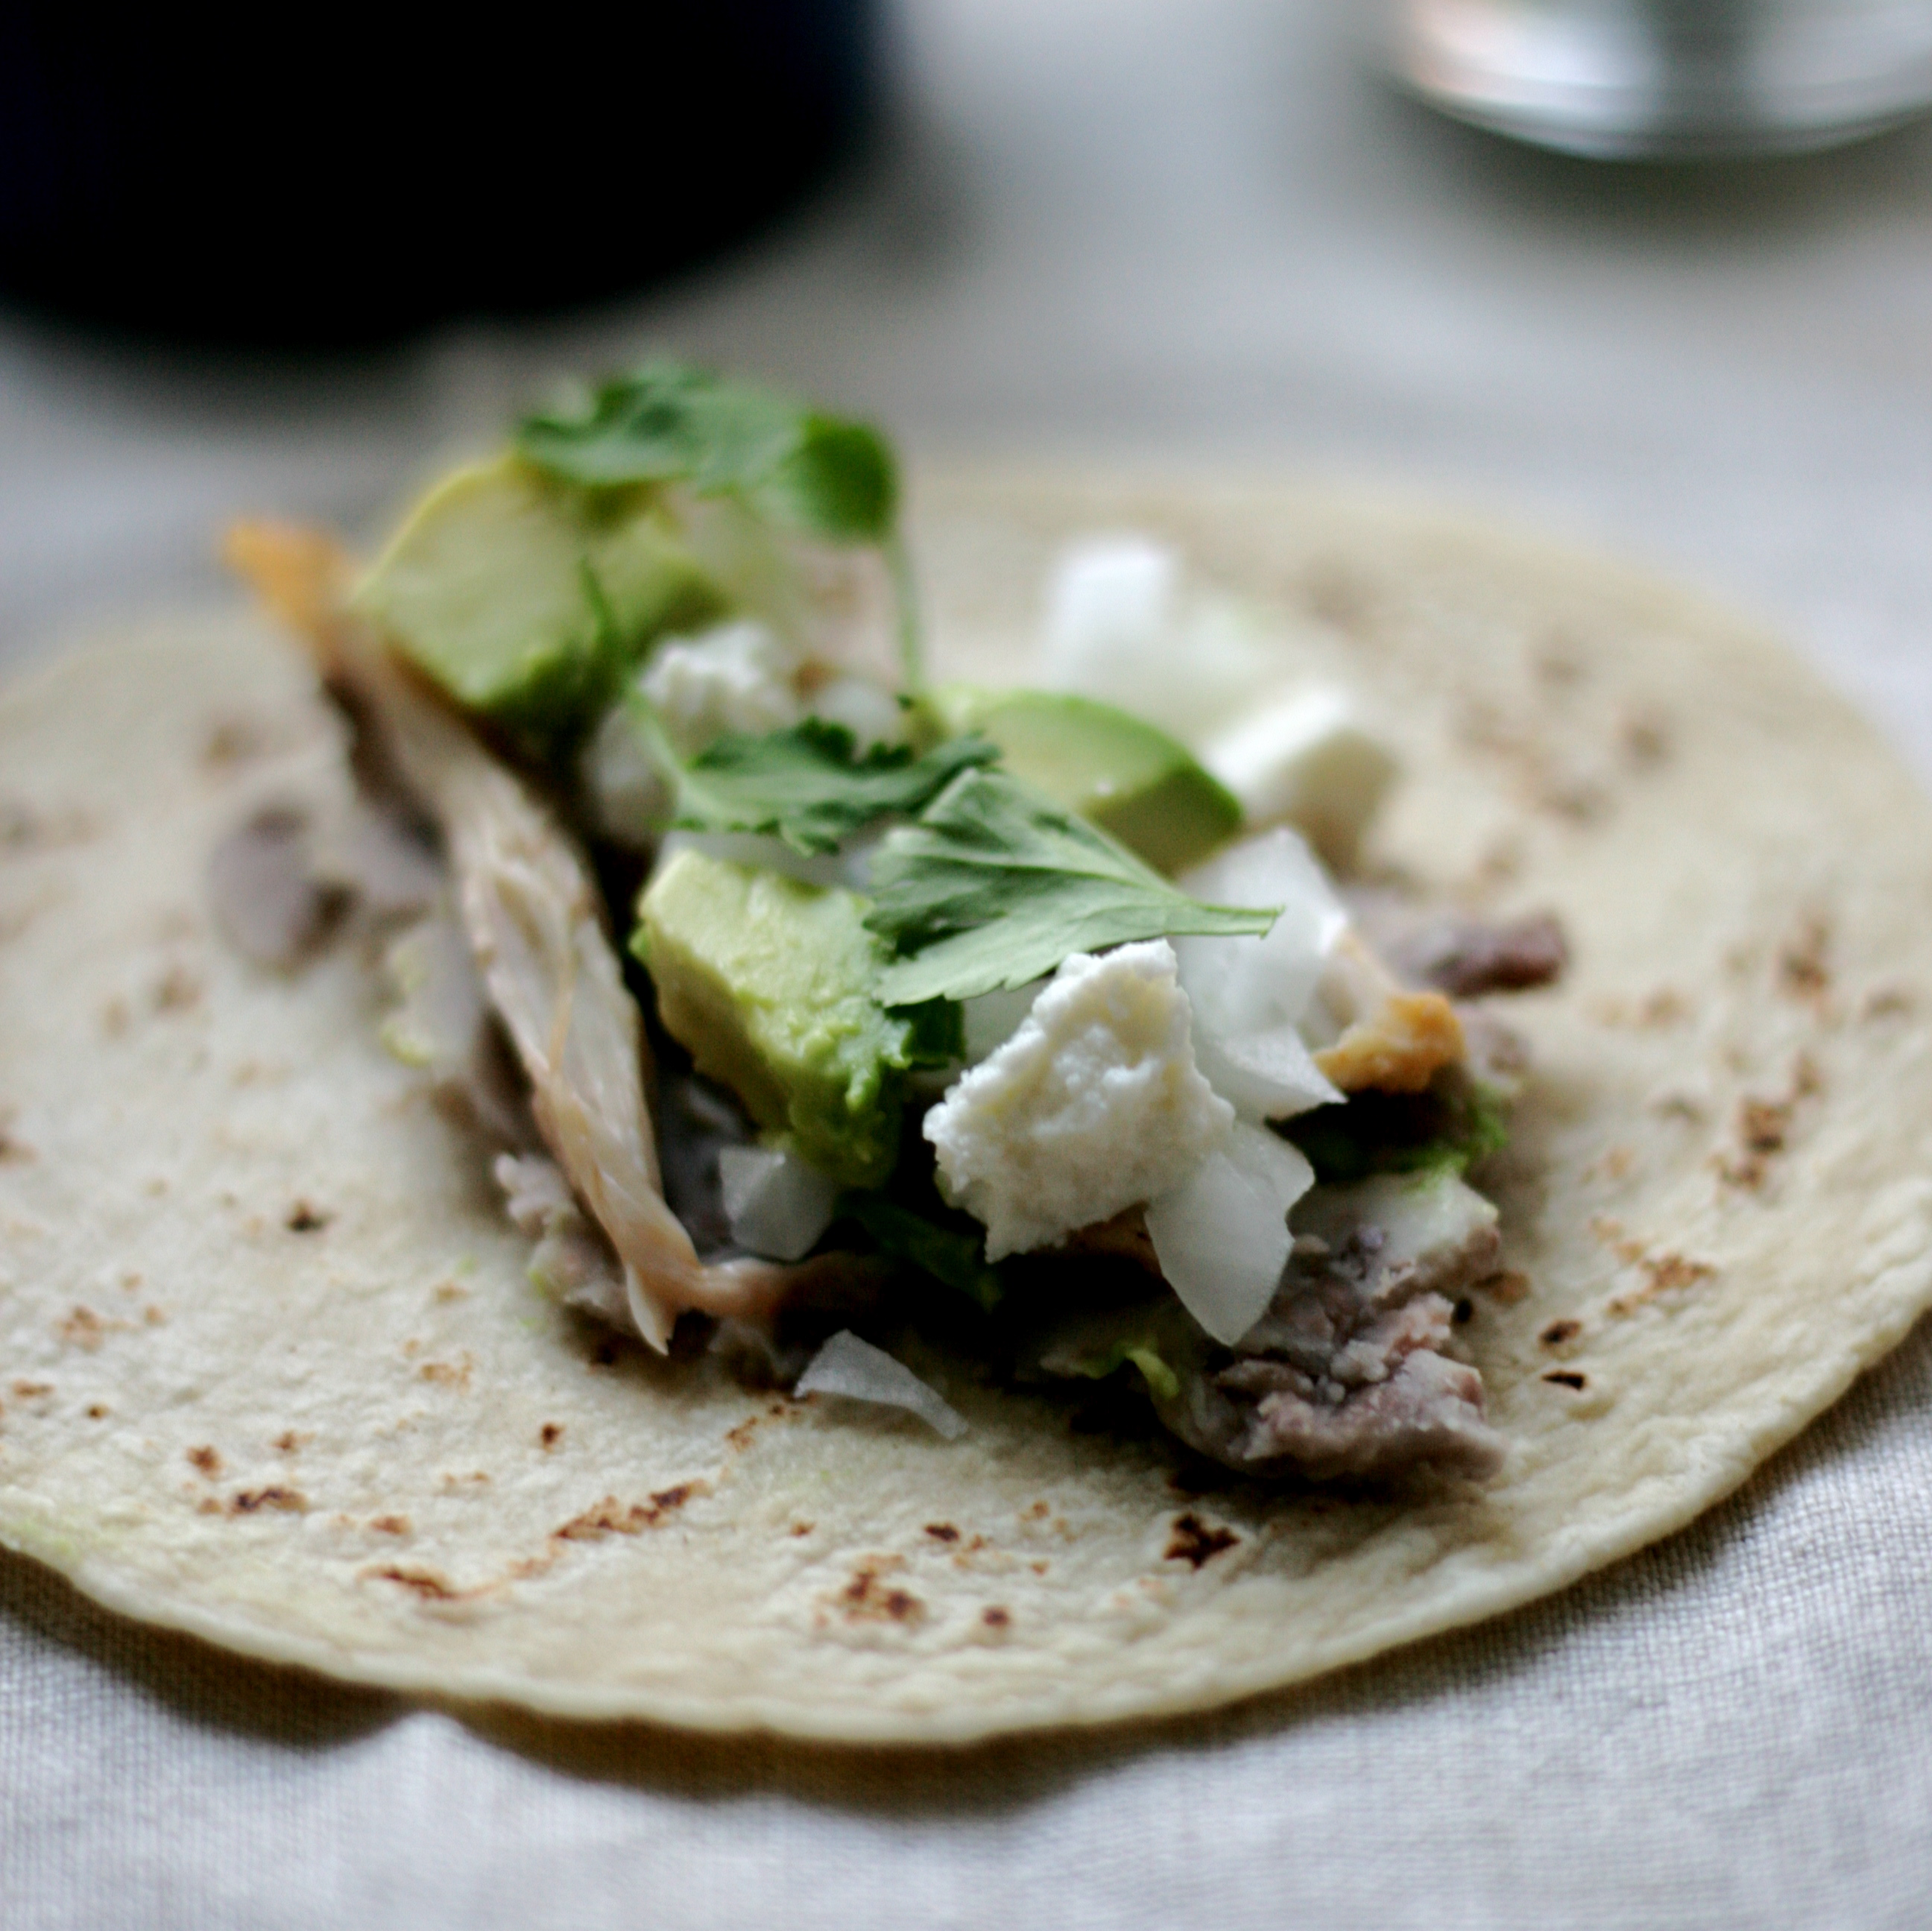 Chicken Tacos with Mashed Pinto Beans